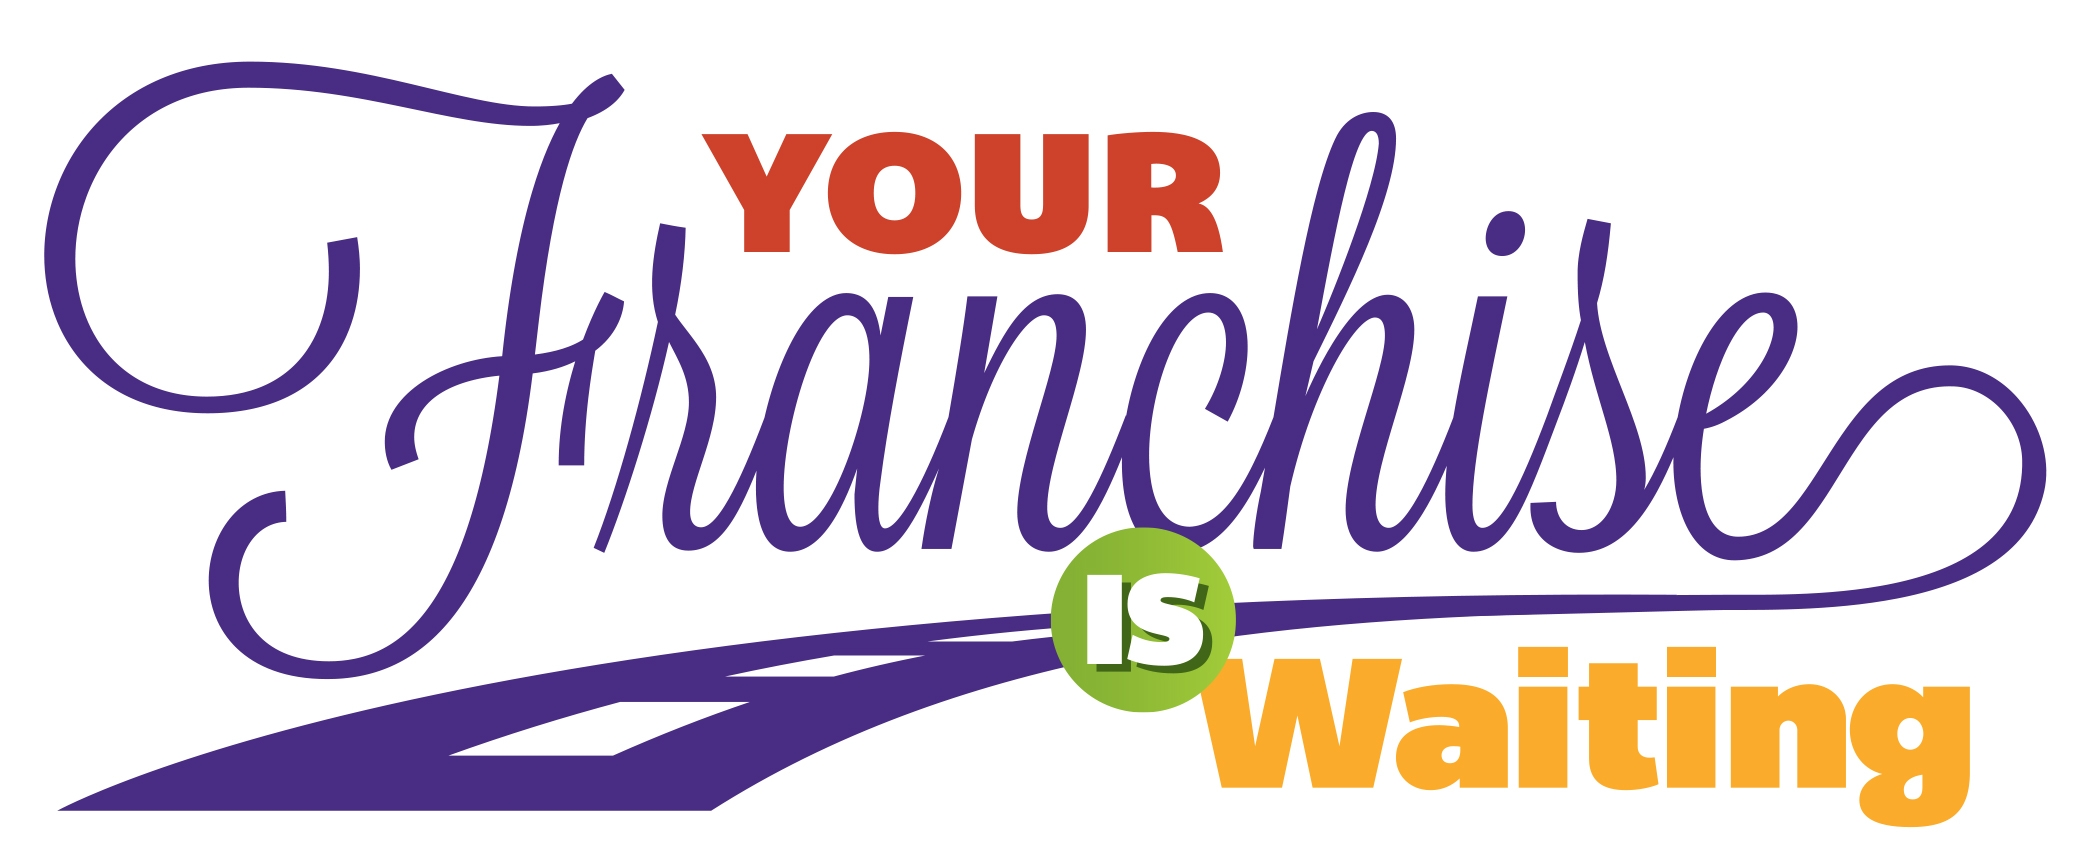 Your Franchise is Waiting - franchise consulting